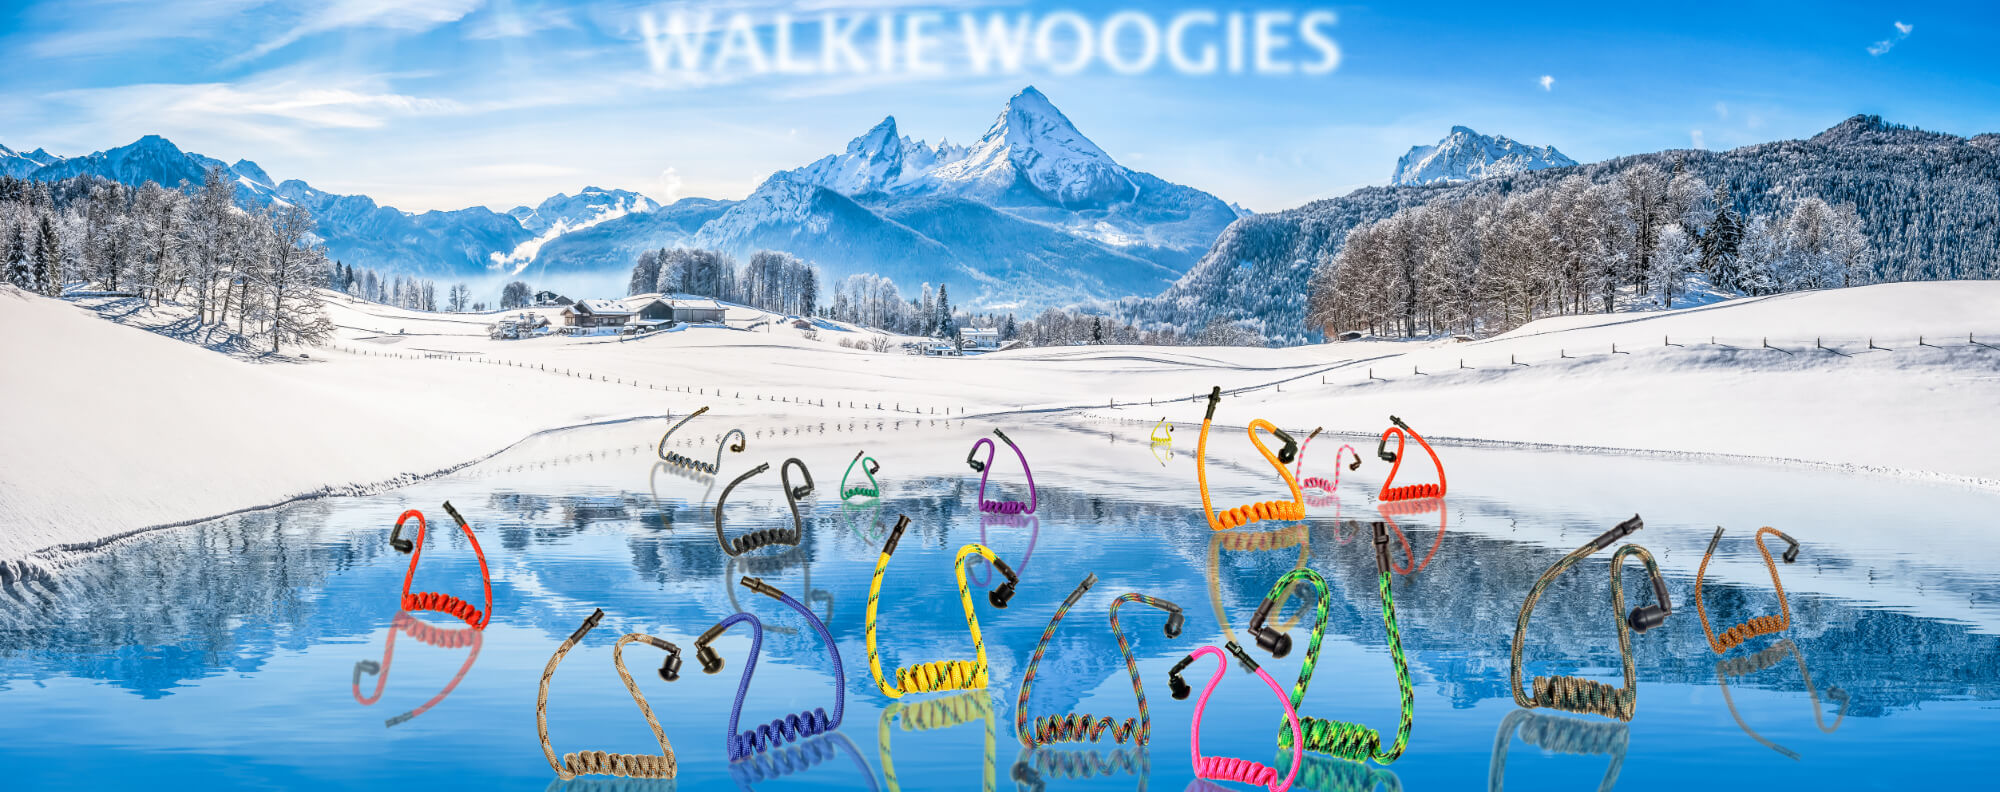 WalkieWoogies